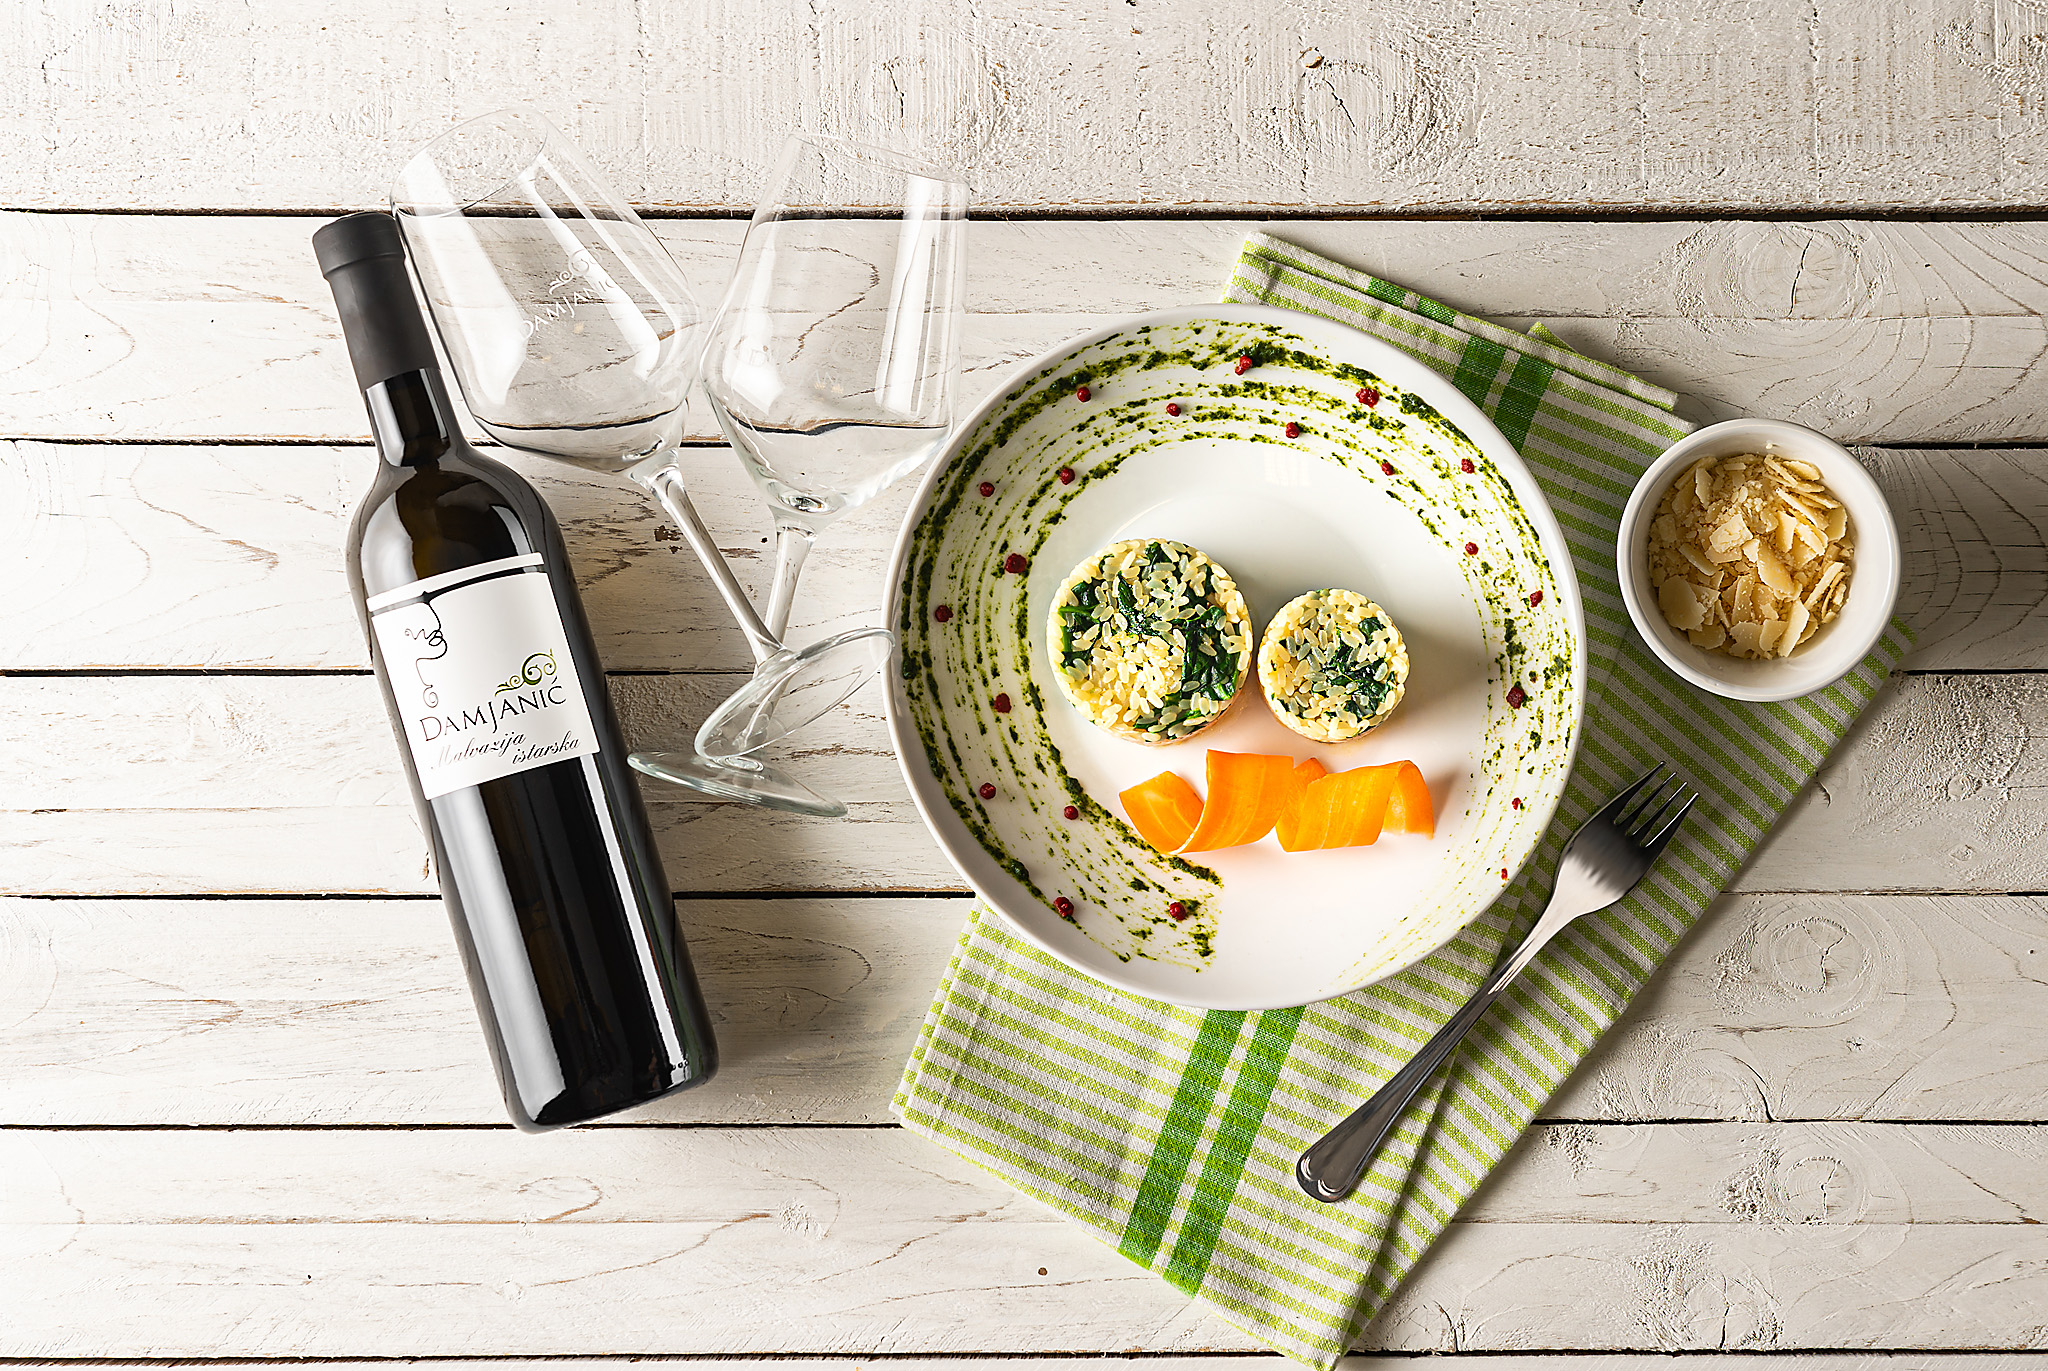 hren | plethora of creativity // Damjanić winery food pairing product photography